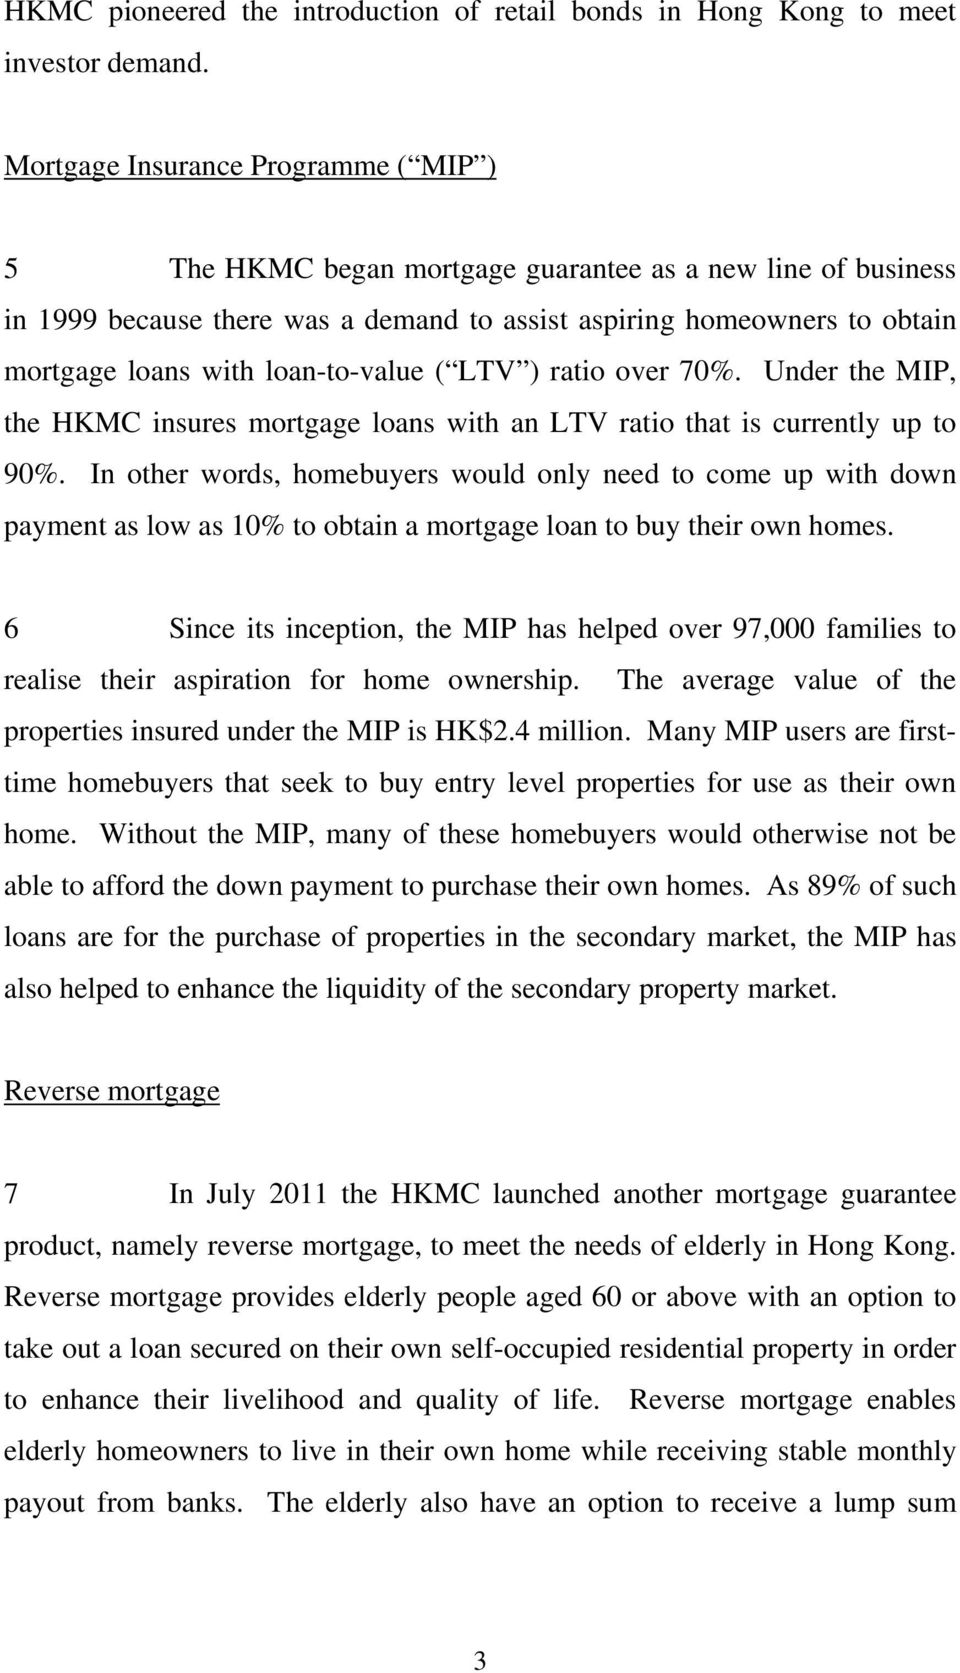 loan-to-value ( LTV ) ratio over 70%. Under the MIP, the HKMC insures mortgage loans with an LTV ratio that is currently up to 90%.